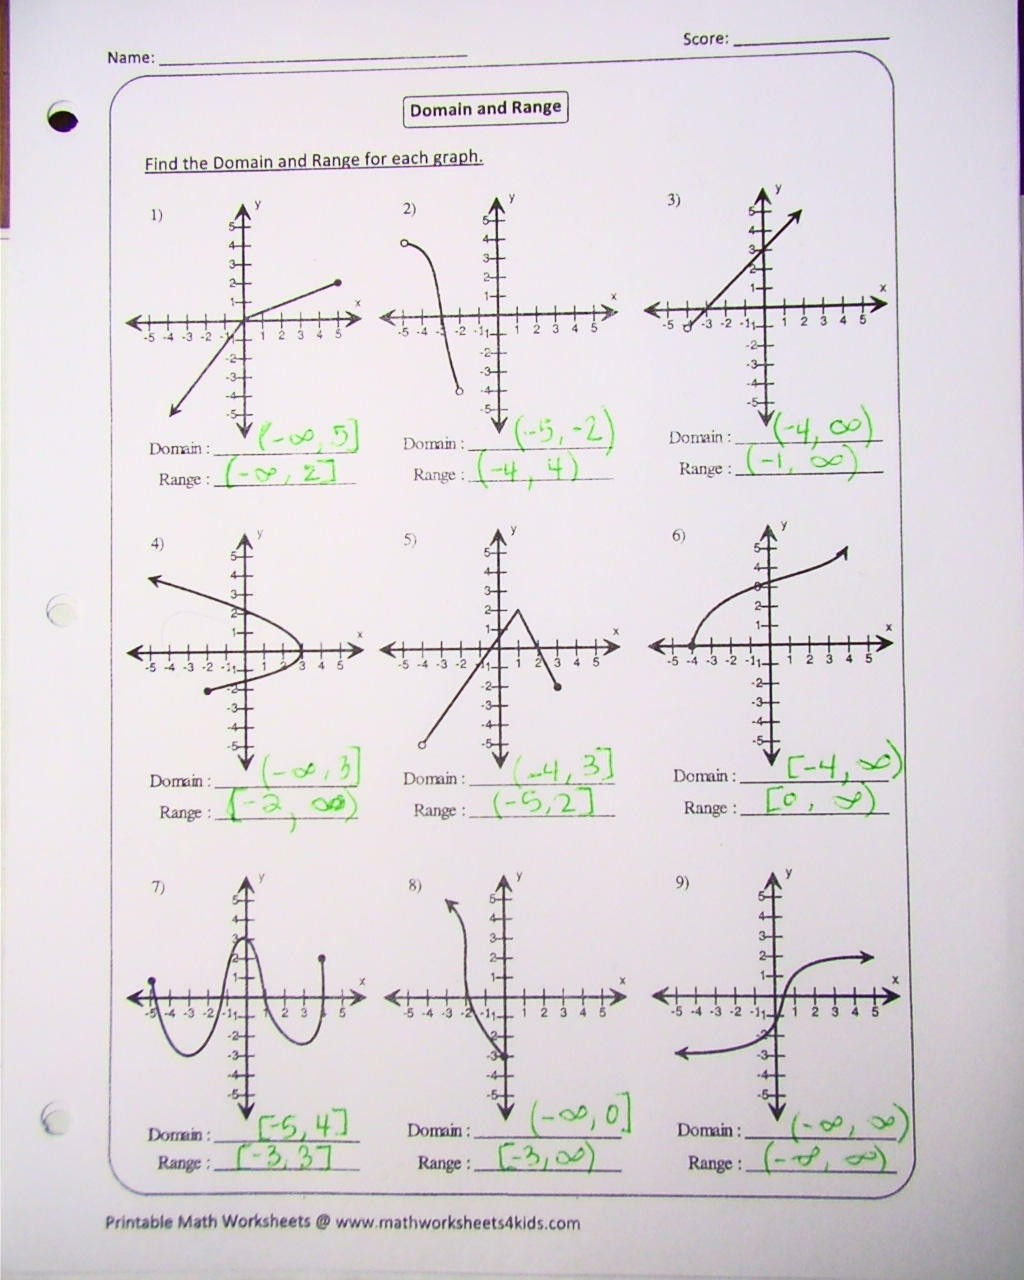 Worksheets Domain And Range Of A Graph Worksheet worksheet domain and range worksheets caytailoc free printables 7 answers delwfg com honors precalc